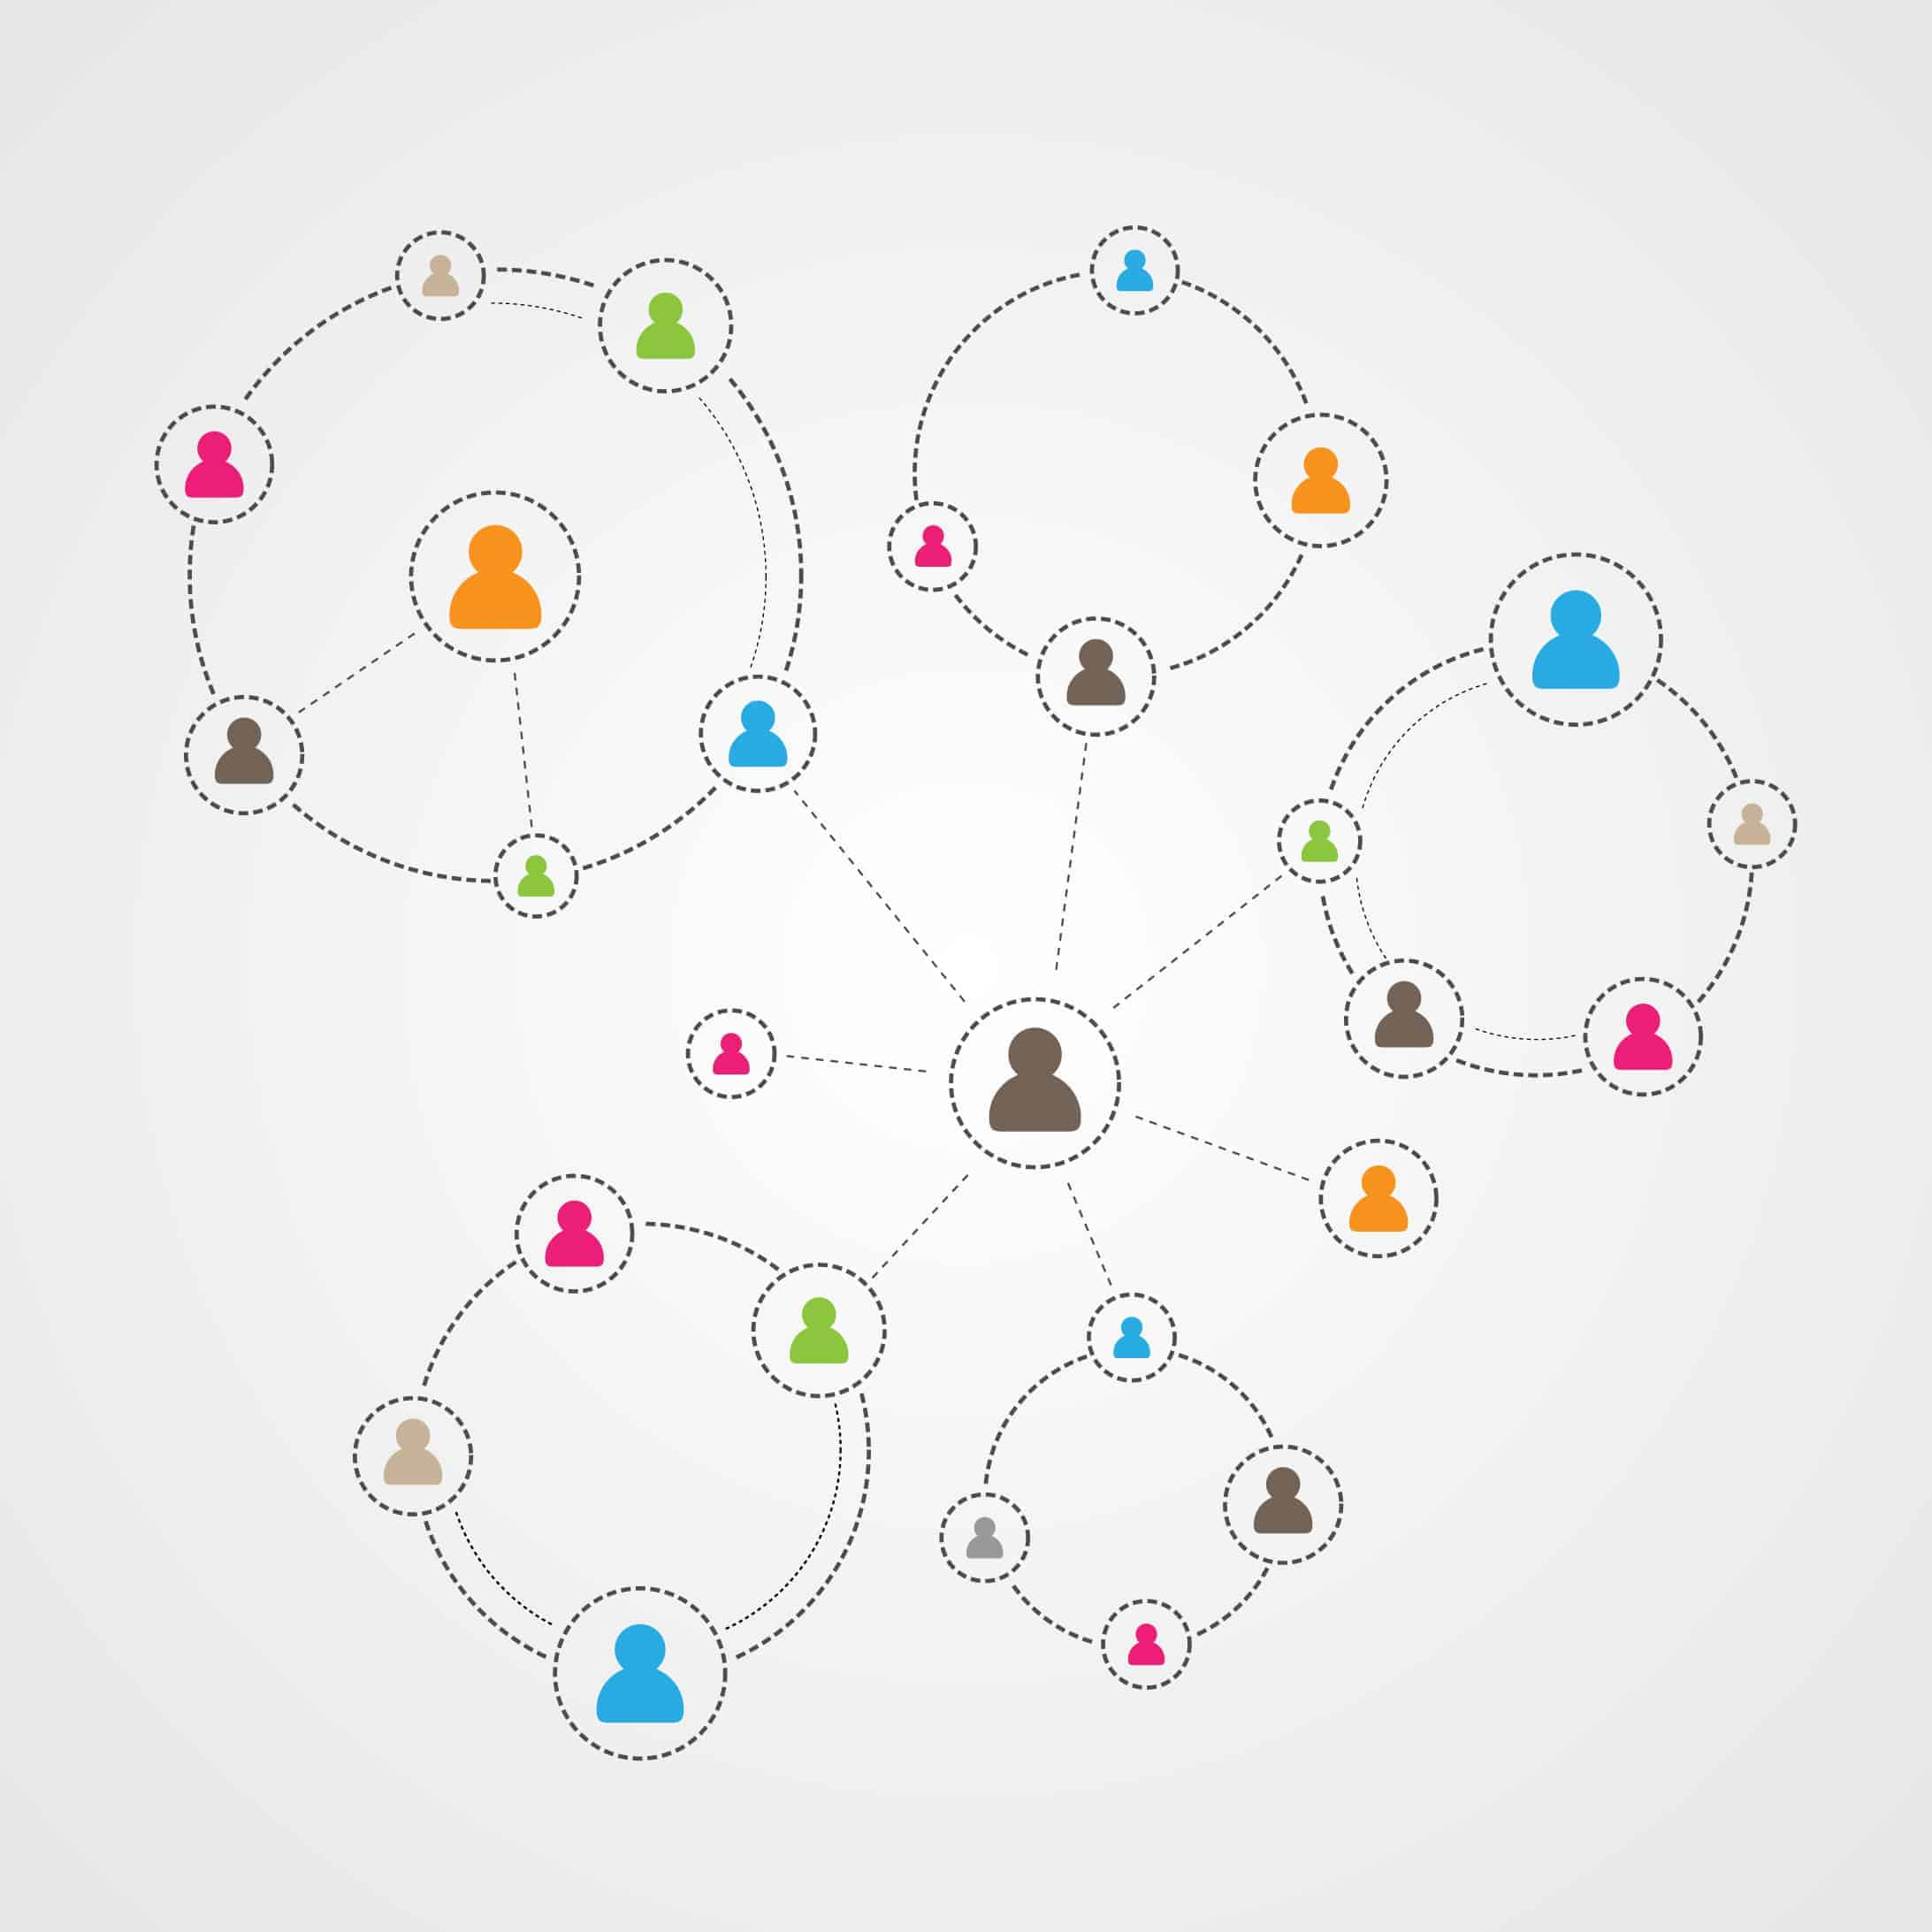 side projects build valuable networks.